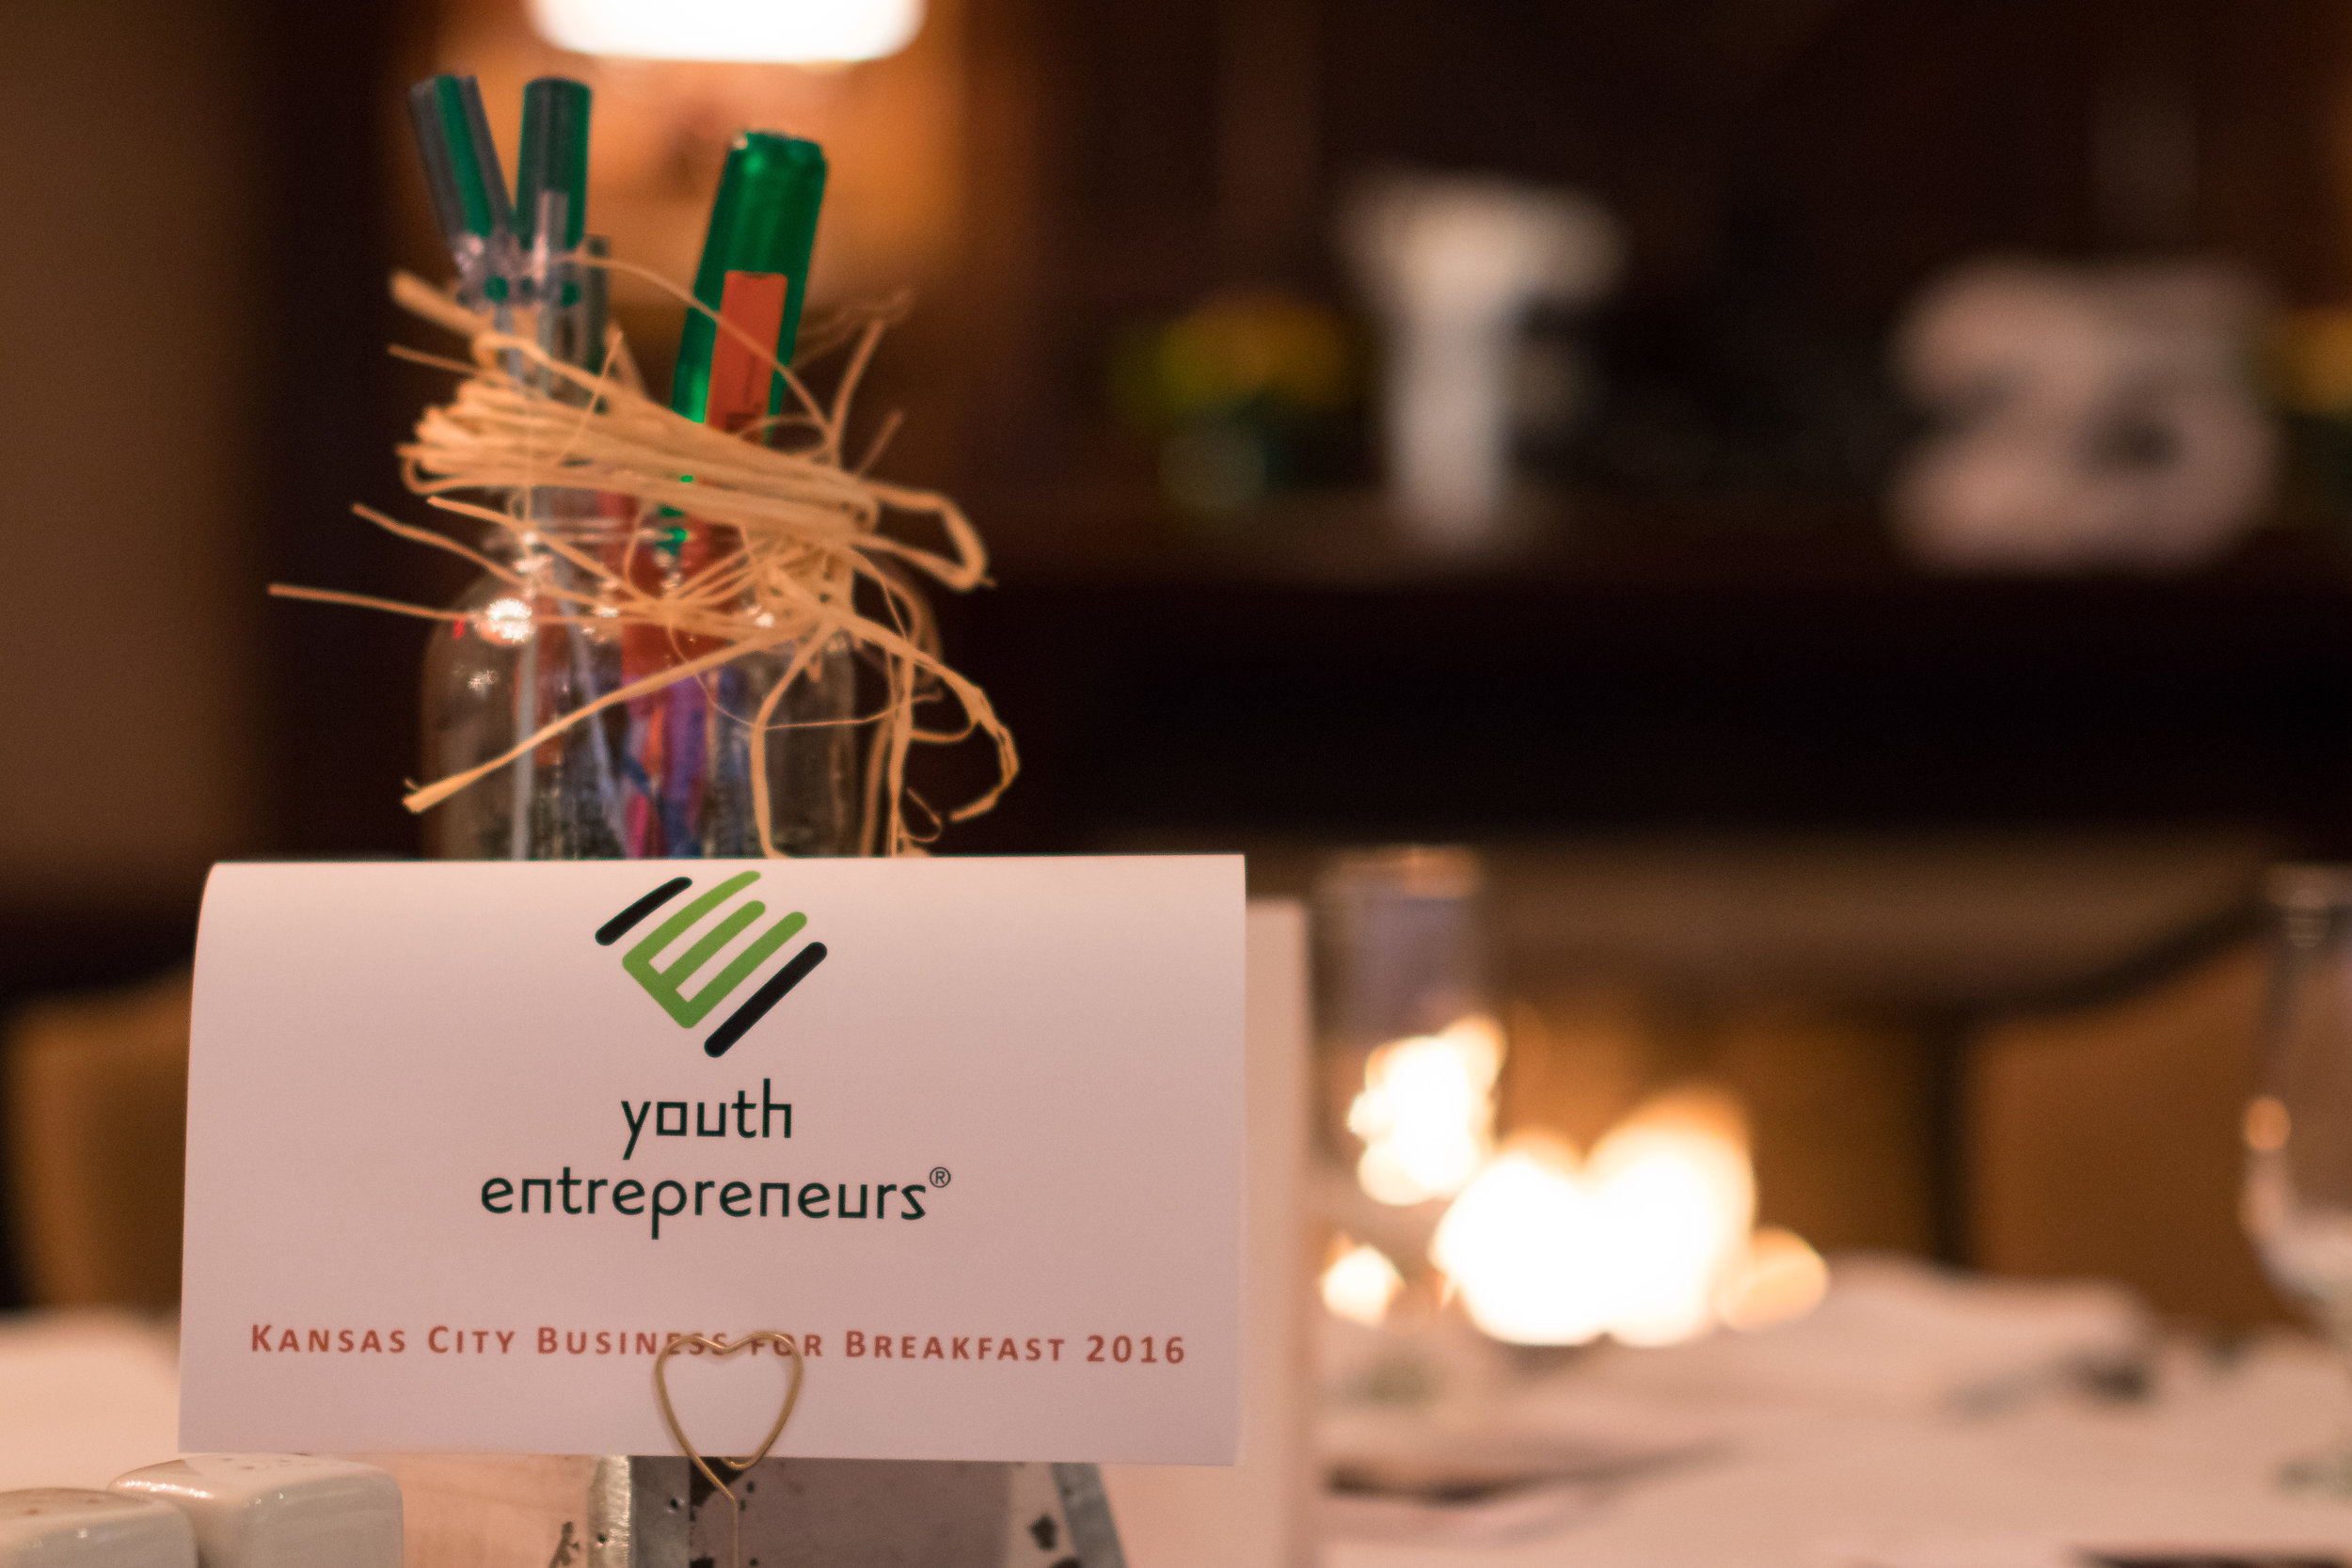 Youth Entrepreneurs Business for Breakfast 2016 Table